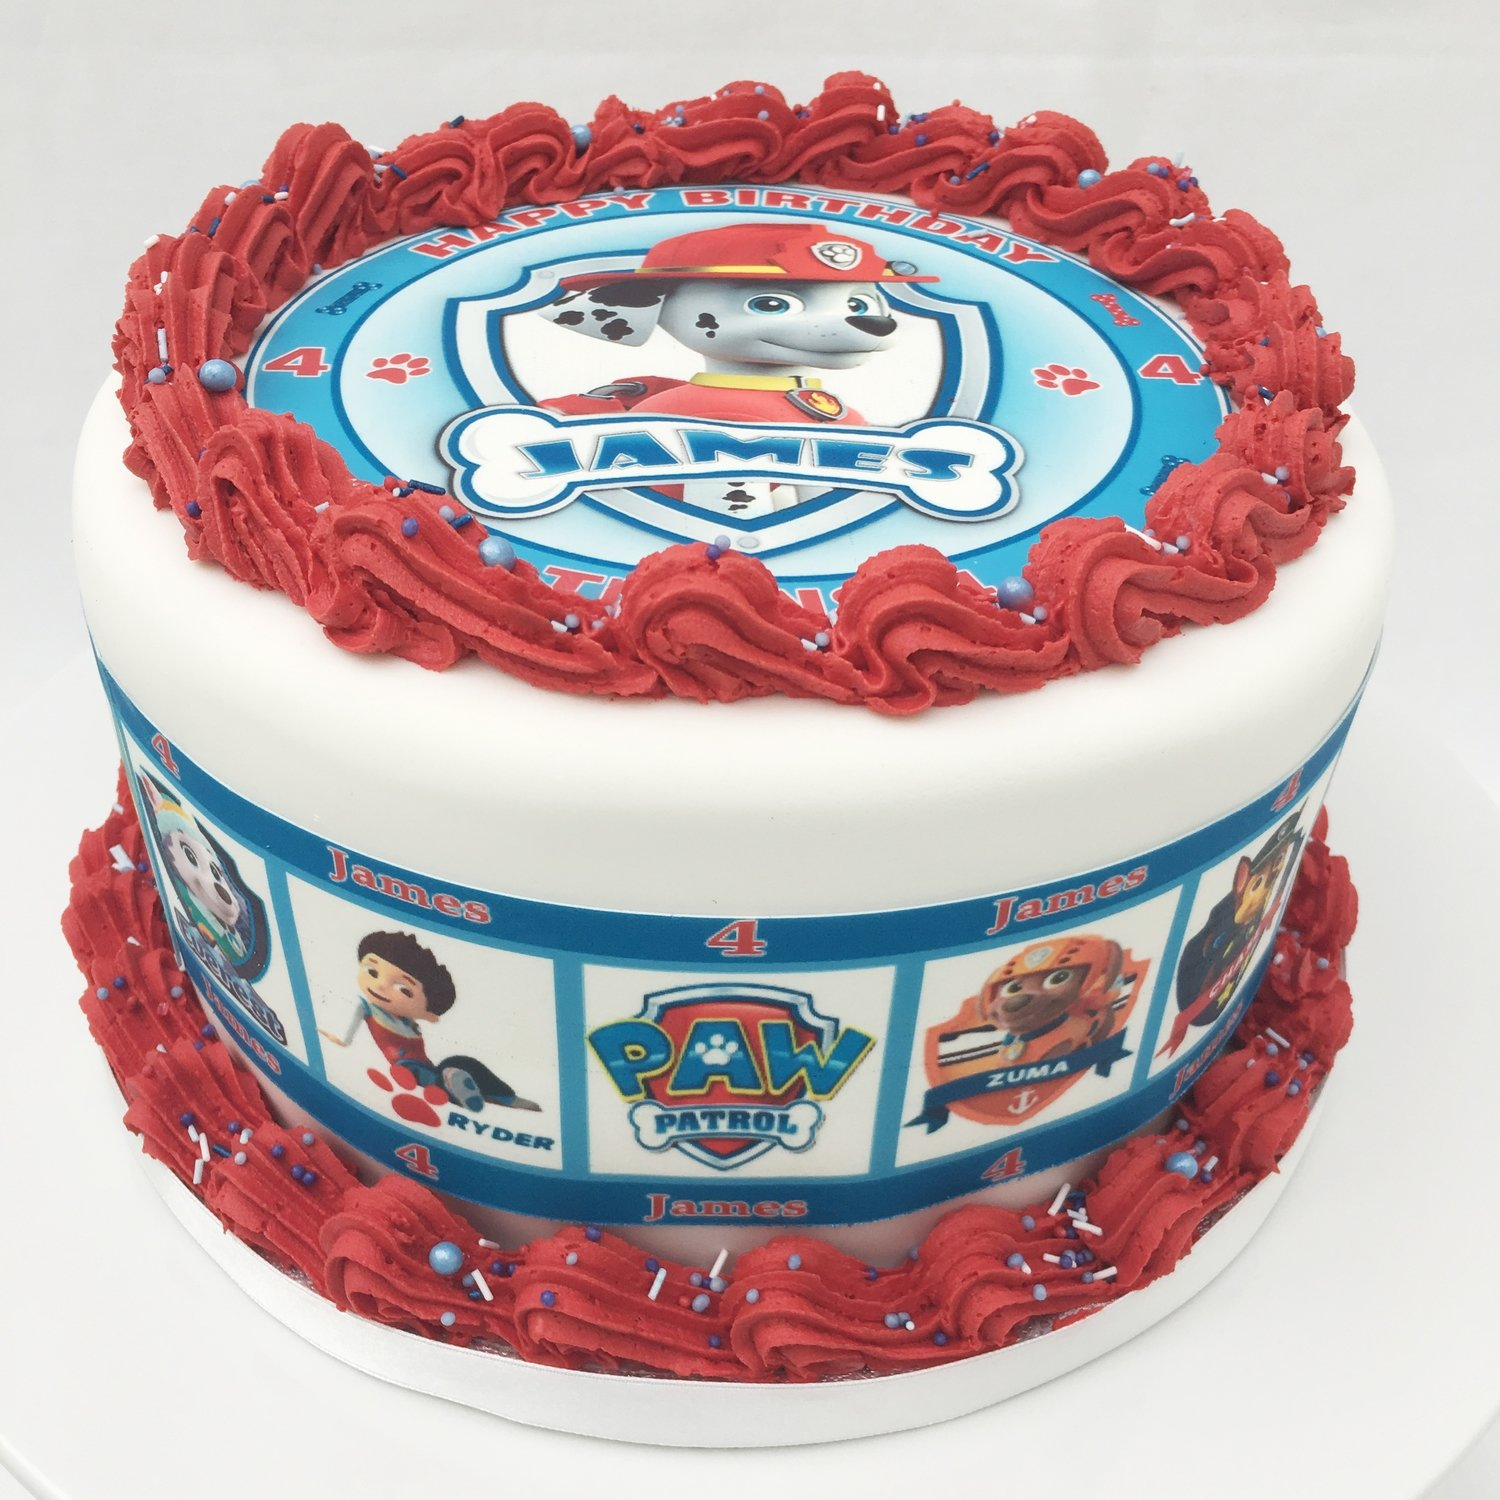 Paw Patrol Edible Image Cake - With Red Butter Cream